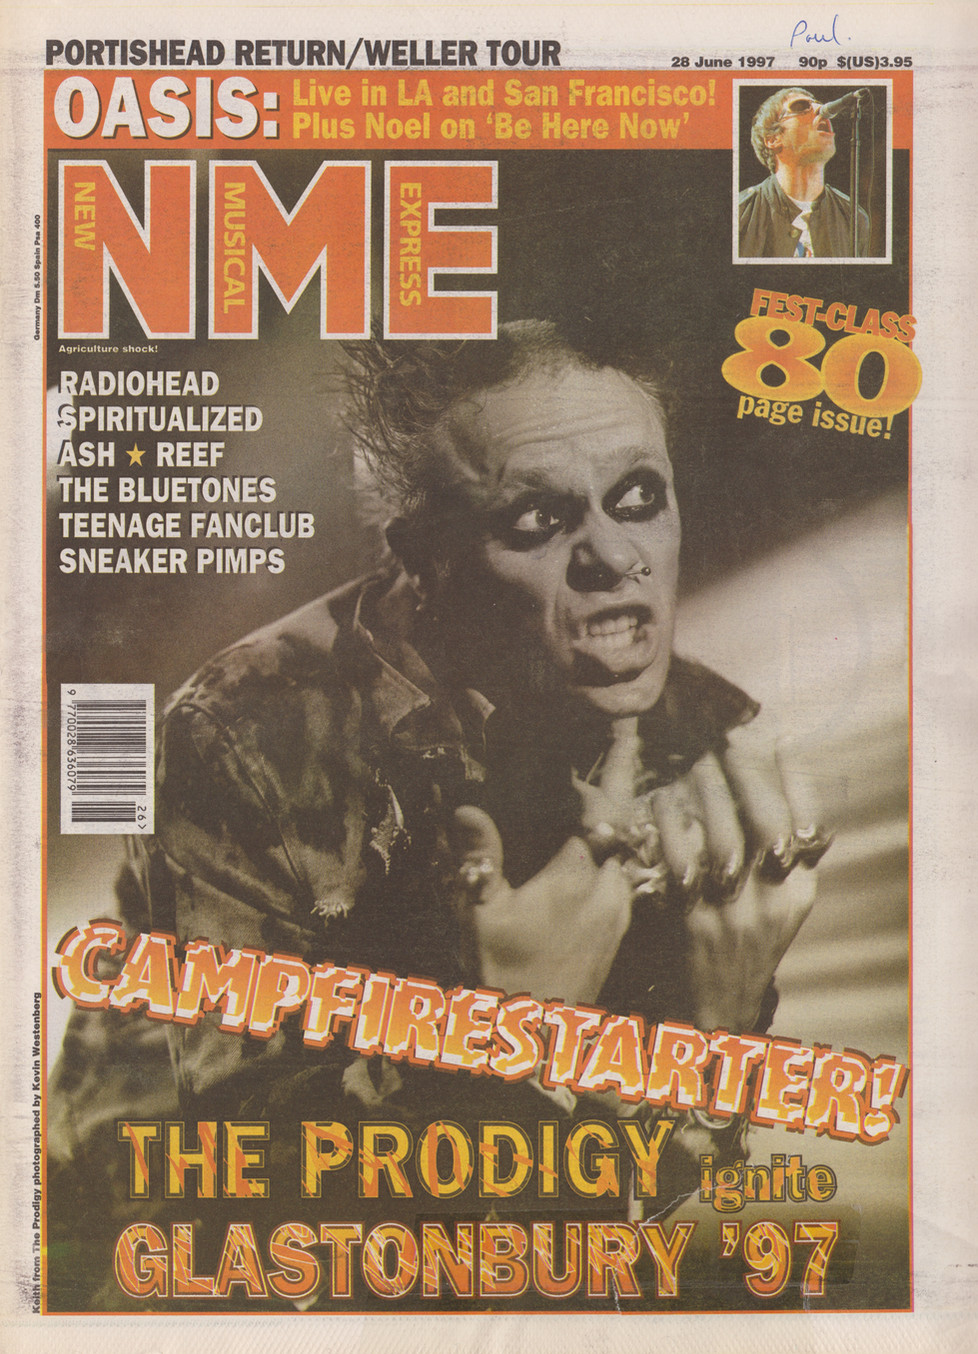 nme4front.jpg